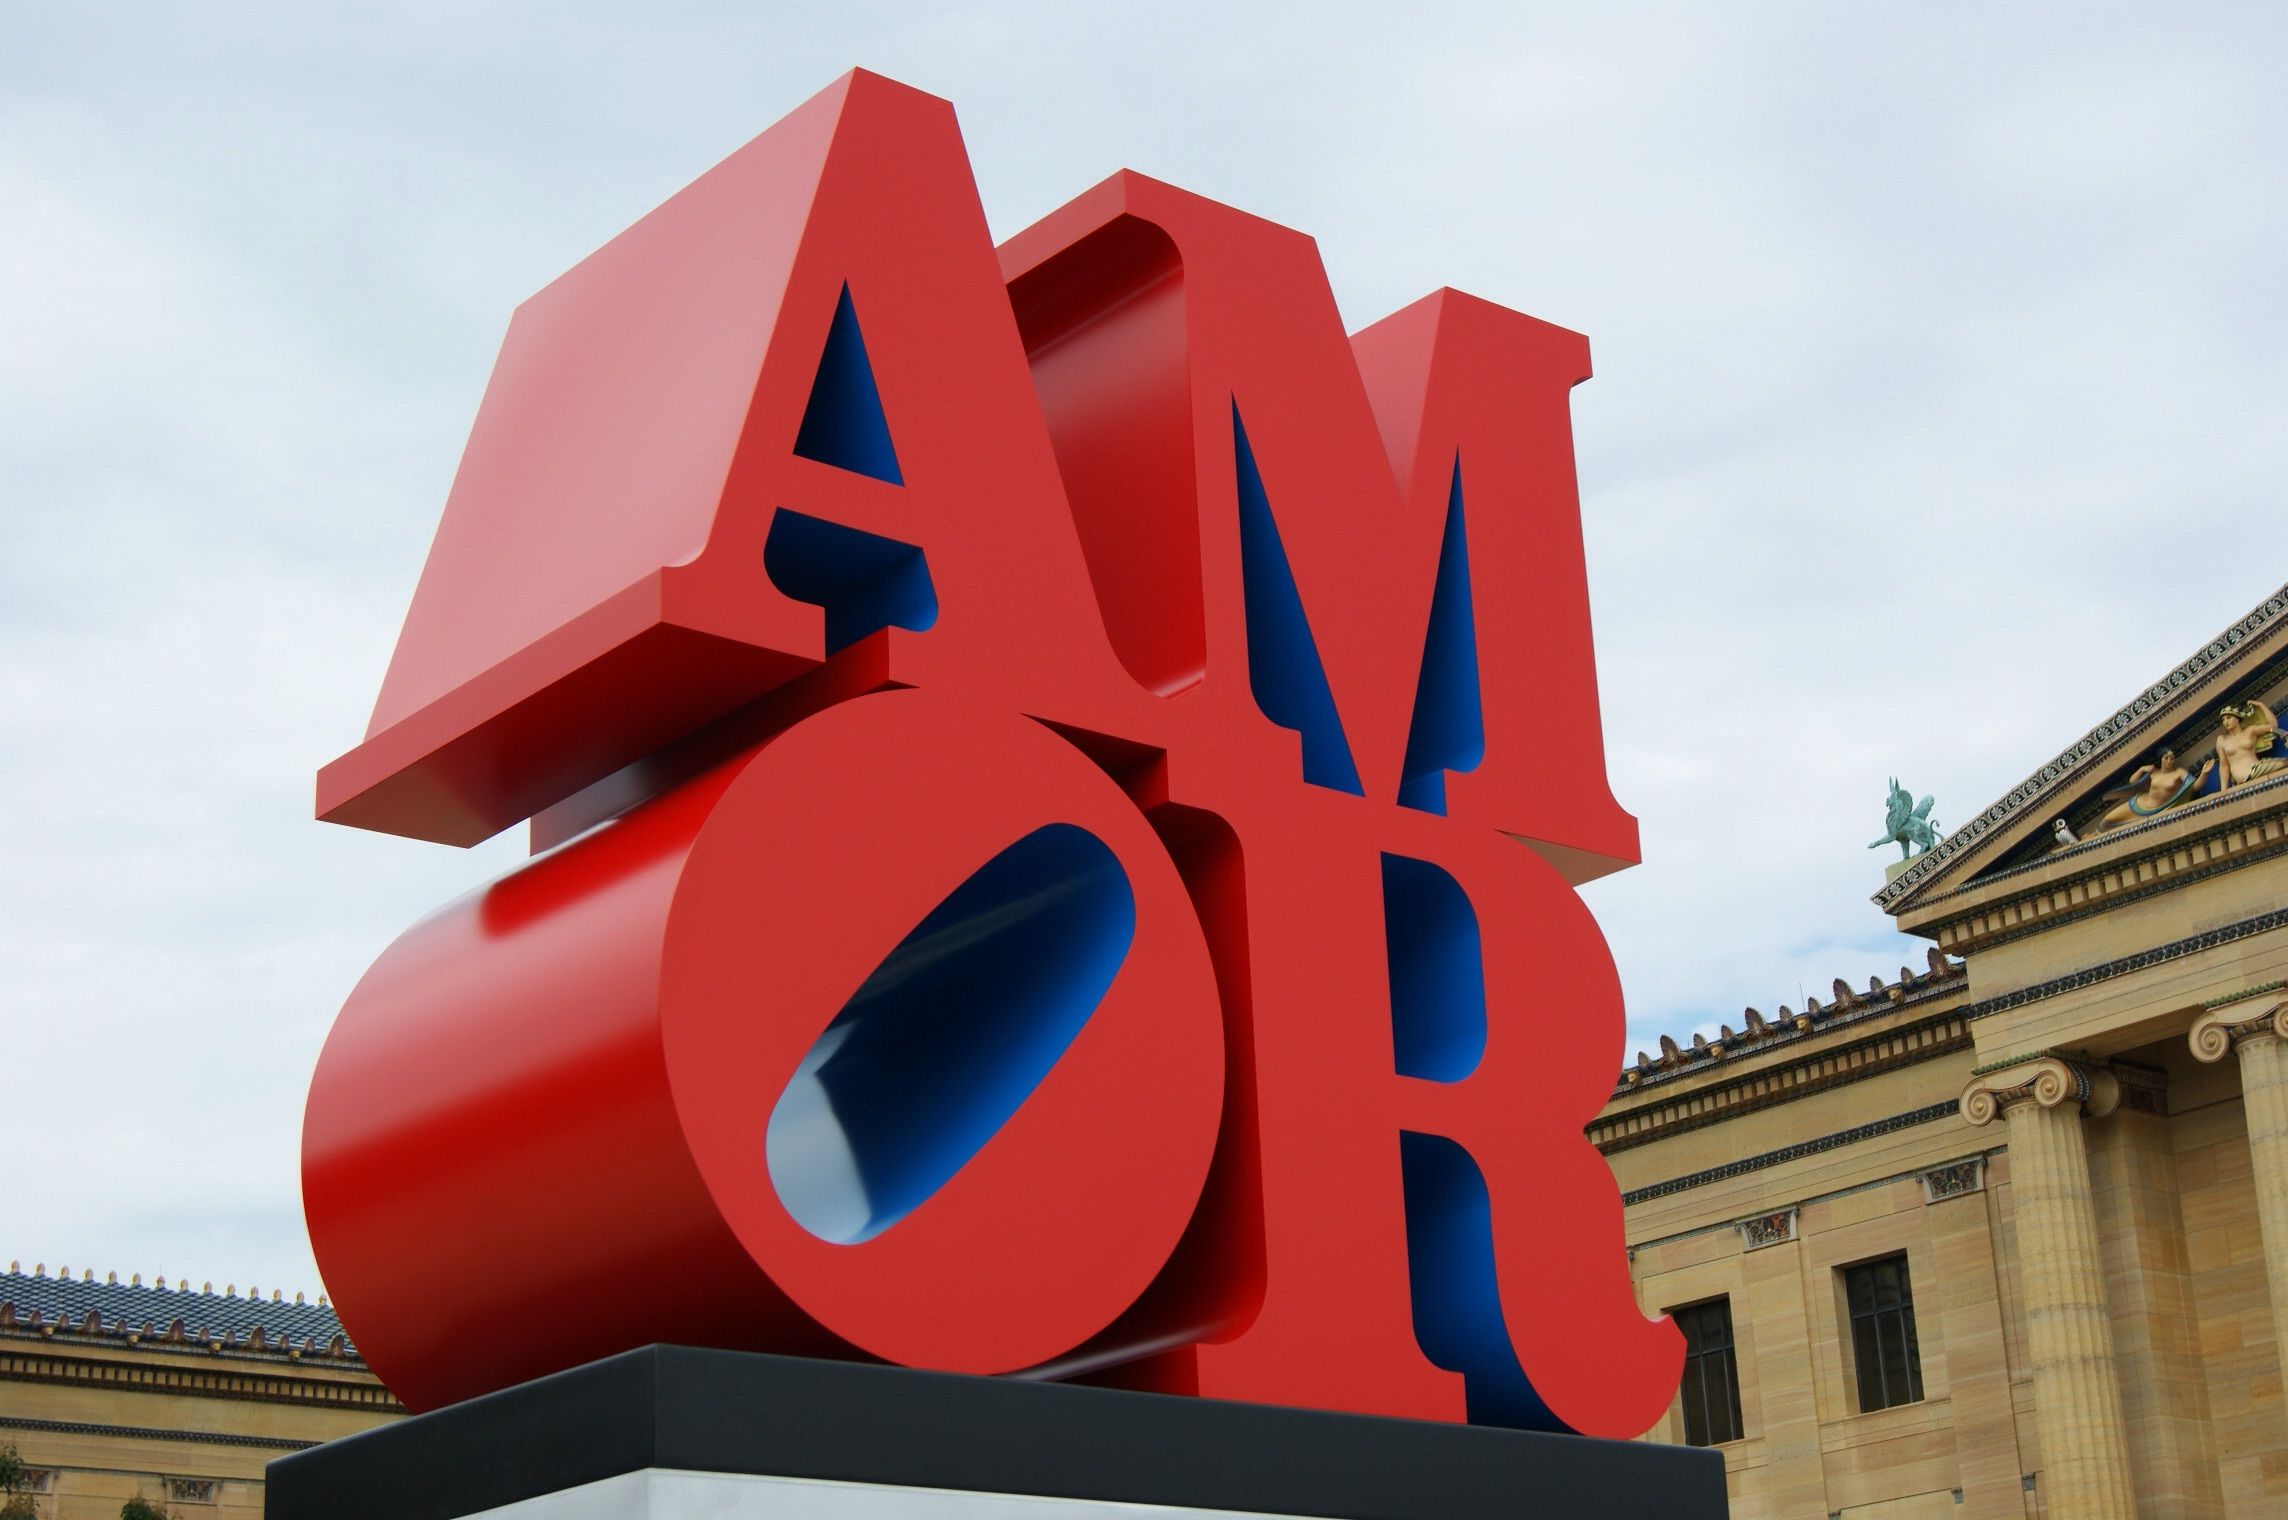 Robert Indiana's Amor Sculpture gets installed at Philadelphia Museum of Art.